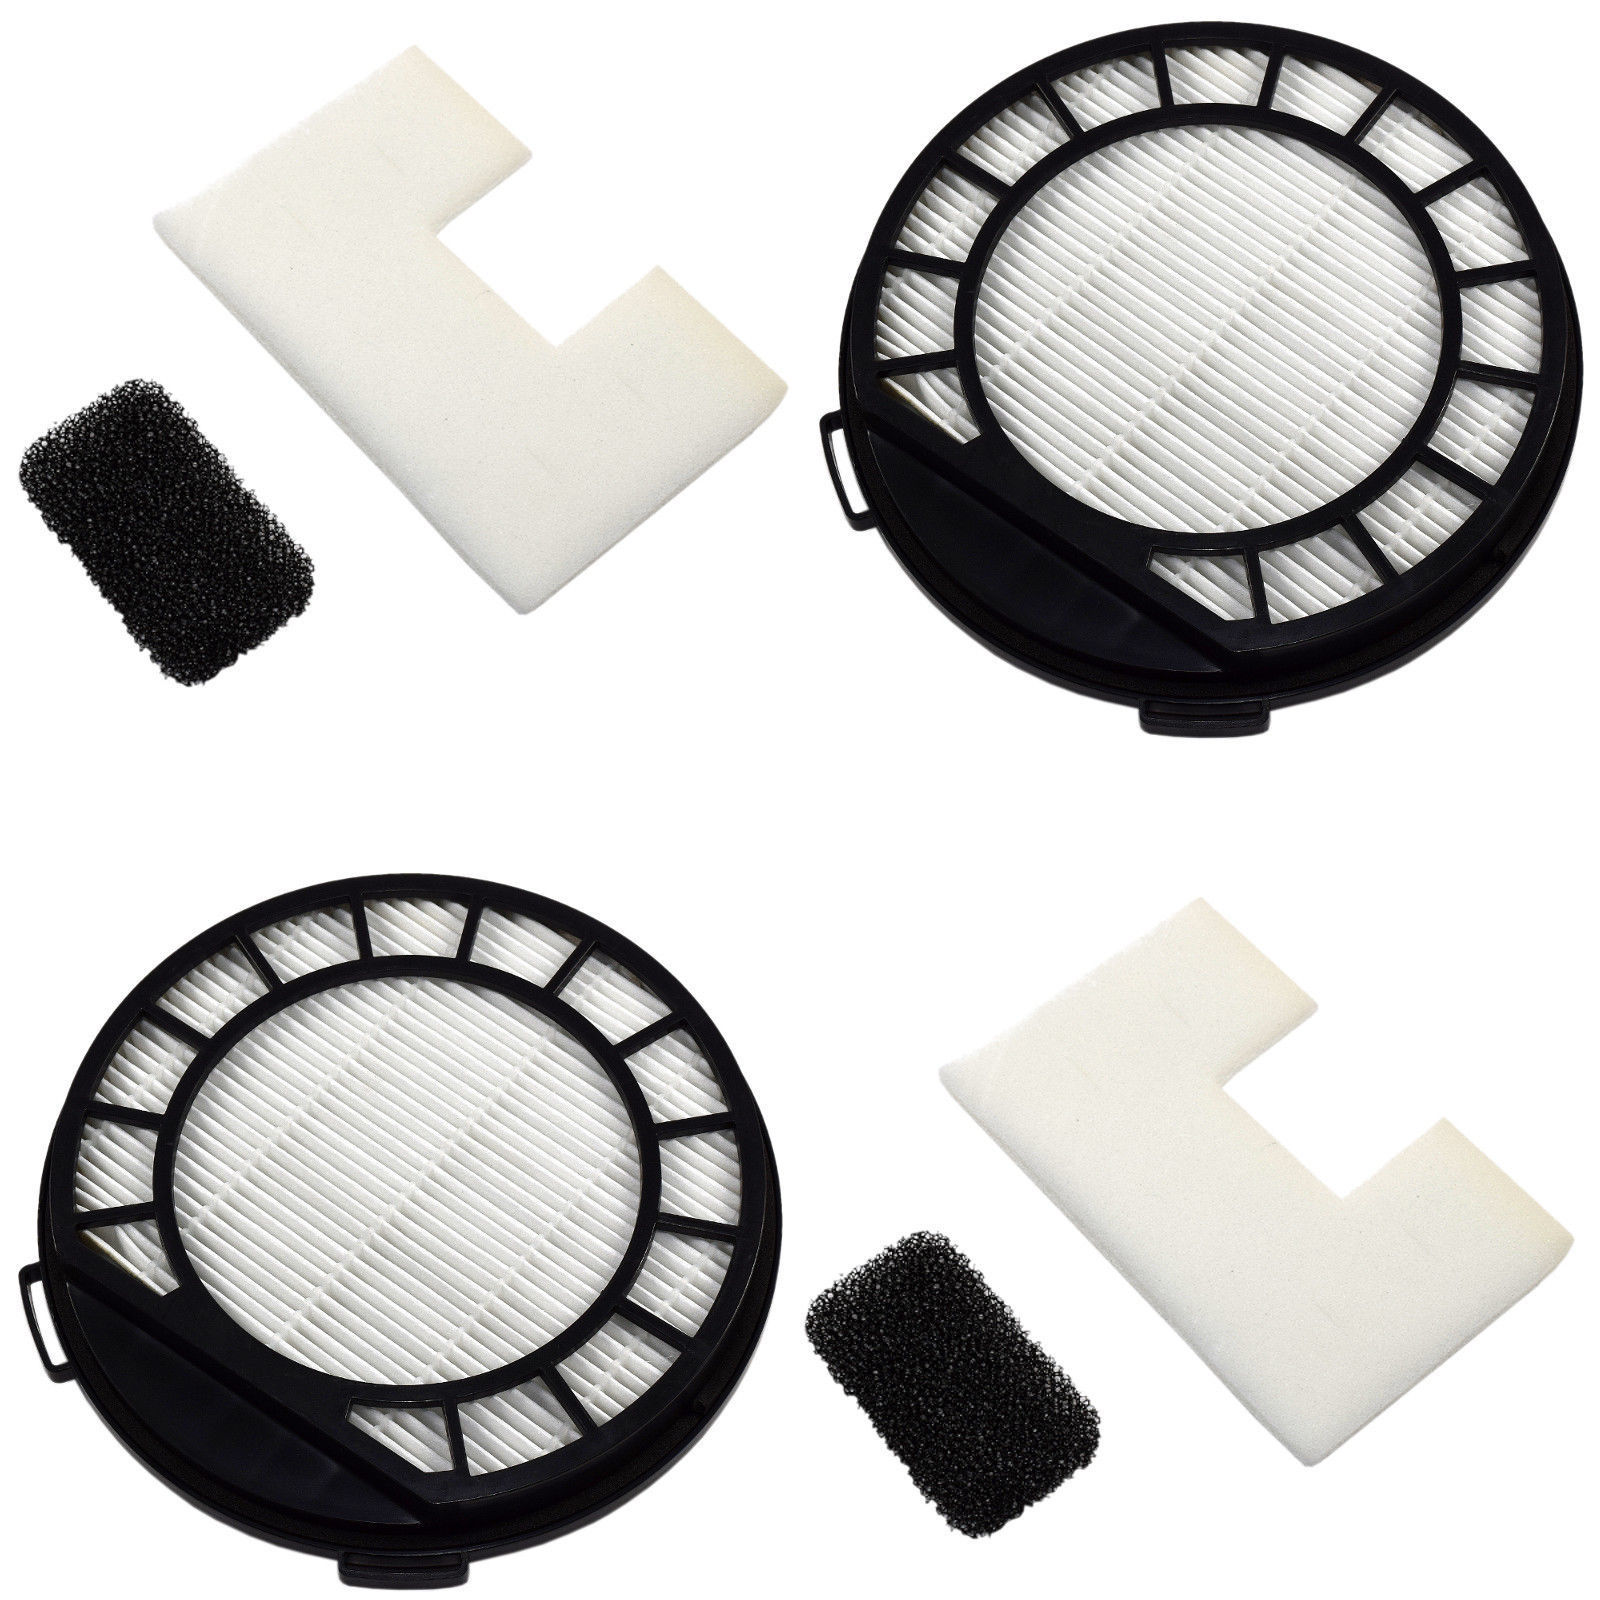 2-Pack HQRP Pre-Motor &HEPA Filter for Vax Power VX C87PVXP C87VCB V2000C C86VCB - $22.59